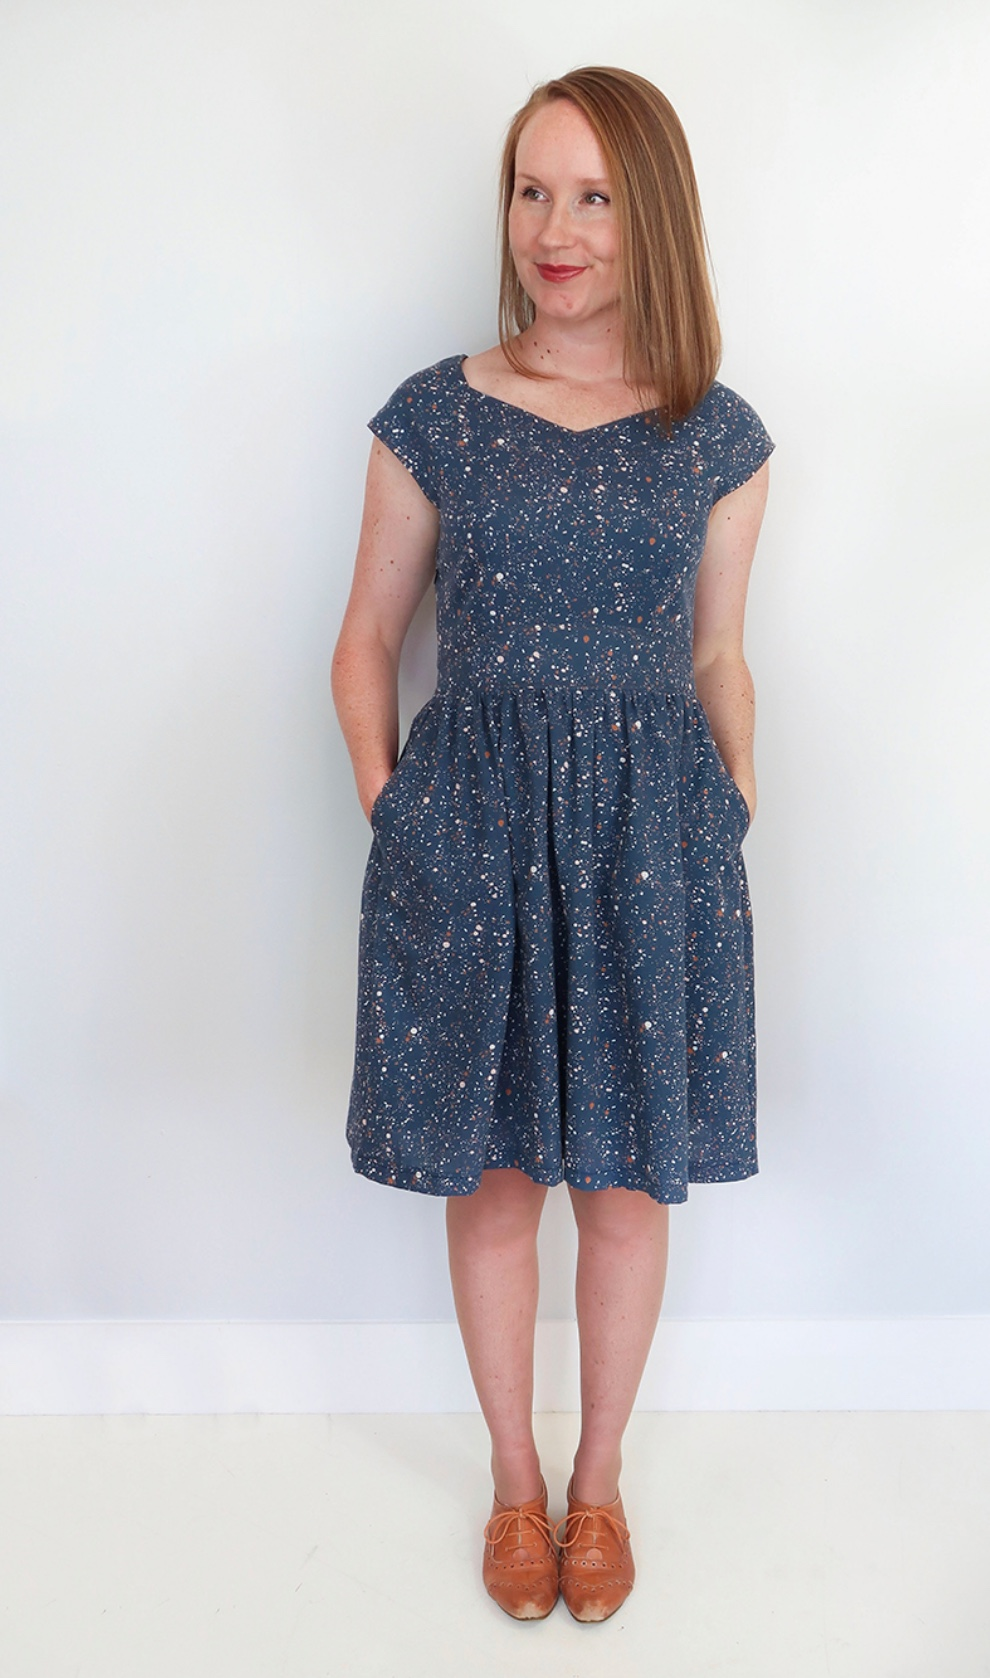 Raine dress from Jennifer Lauren Handmade